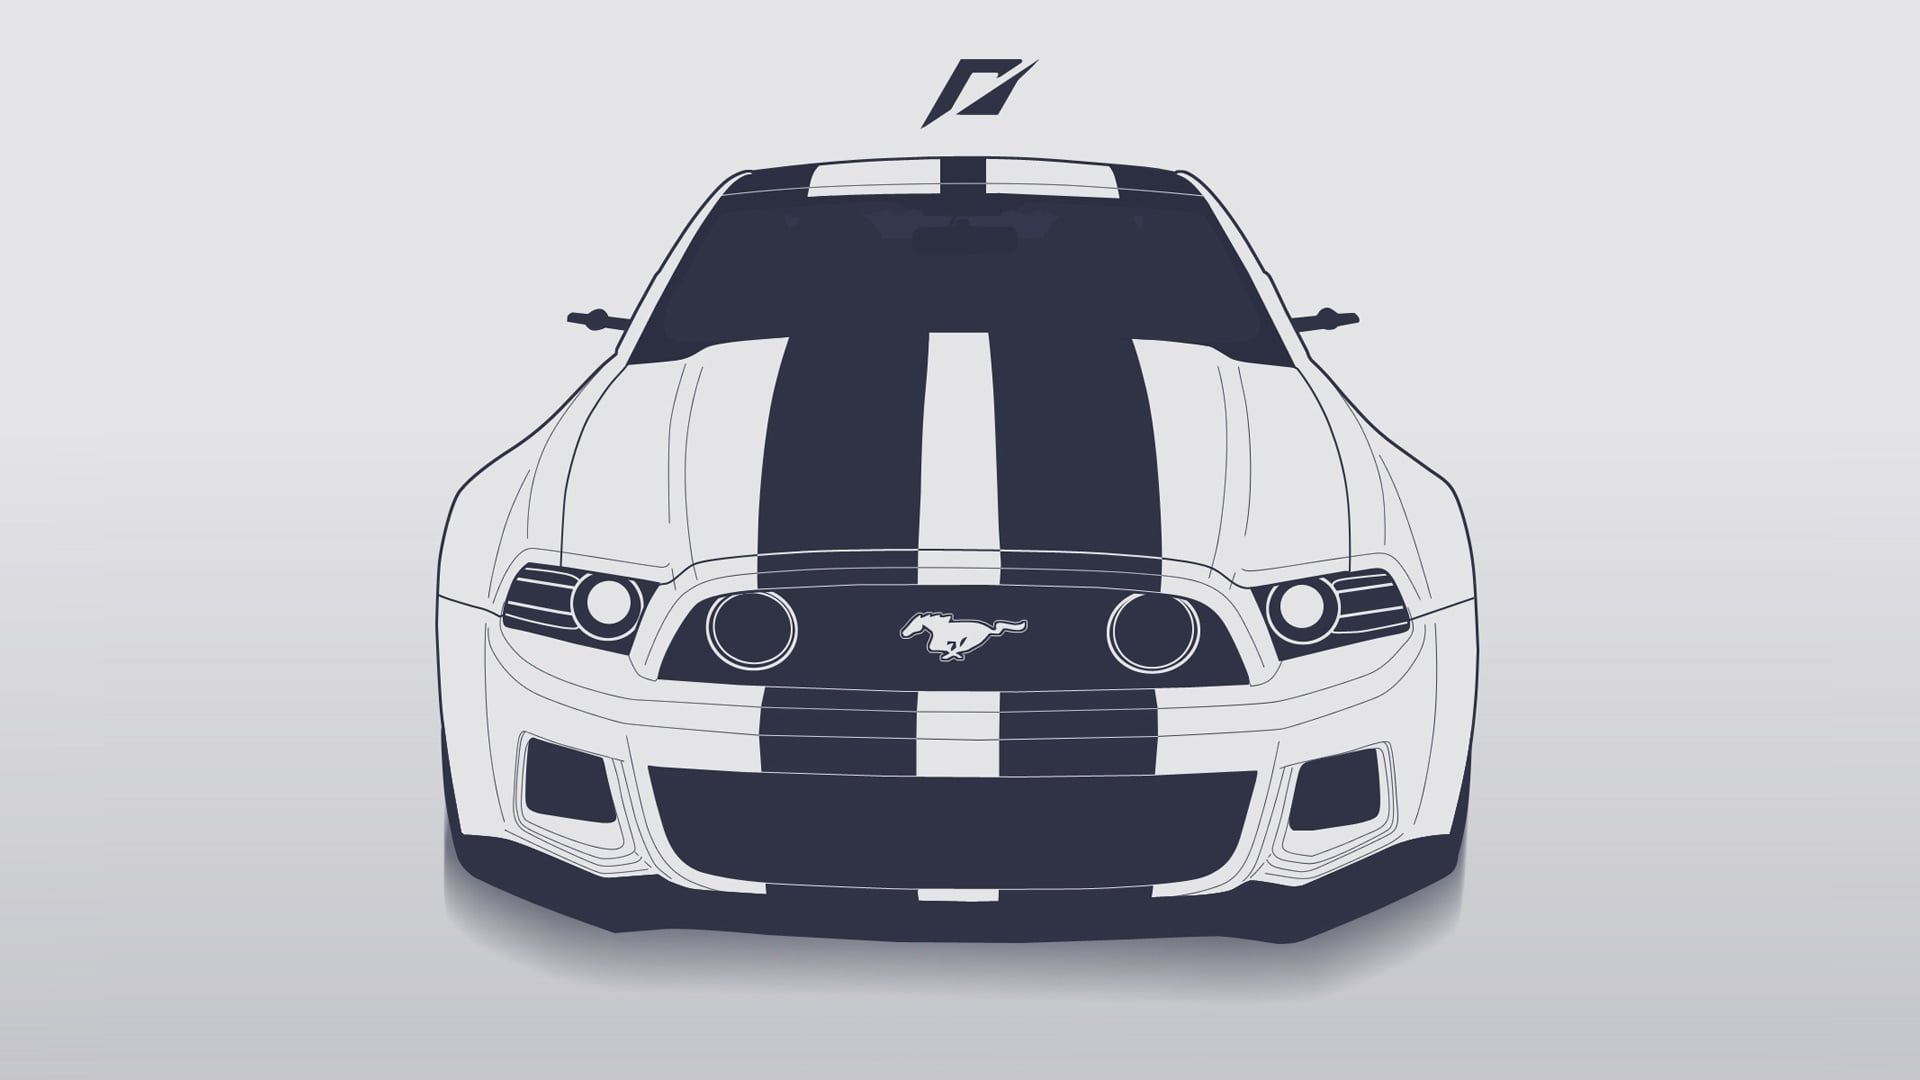 White And Black Ford Mustang Car Illustration Mustang Ford Ford Mustang Need For Speed 2014 Art Line 1080p Wallpap Ford Mustang Car Ford Mustang Mustang